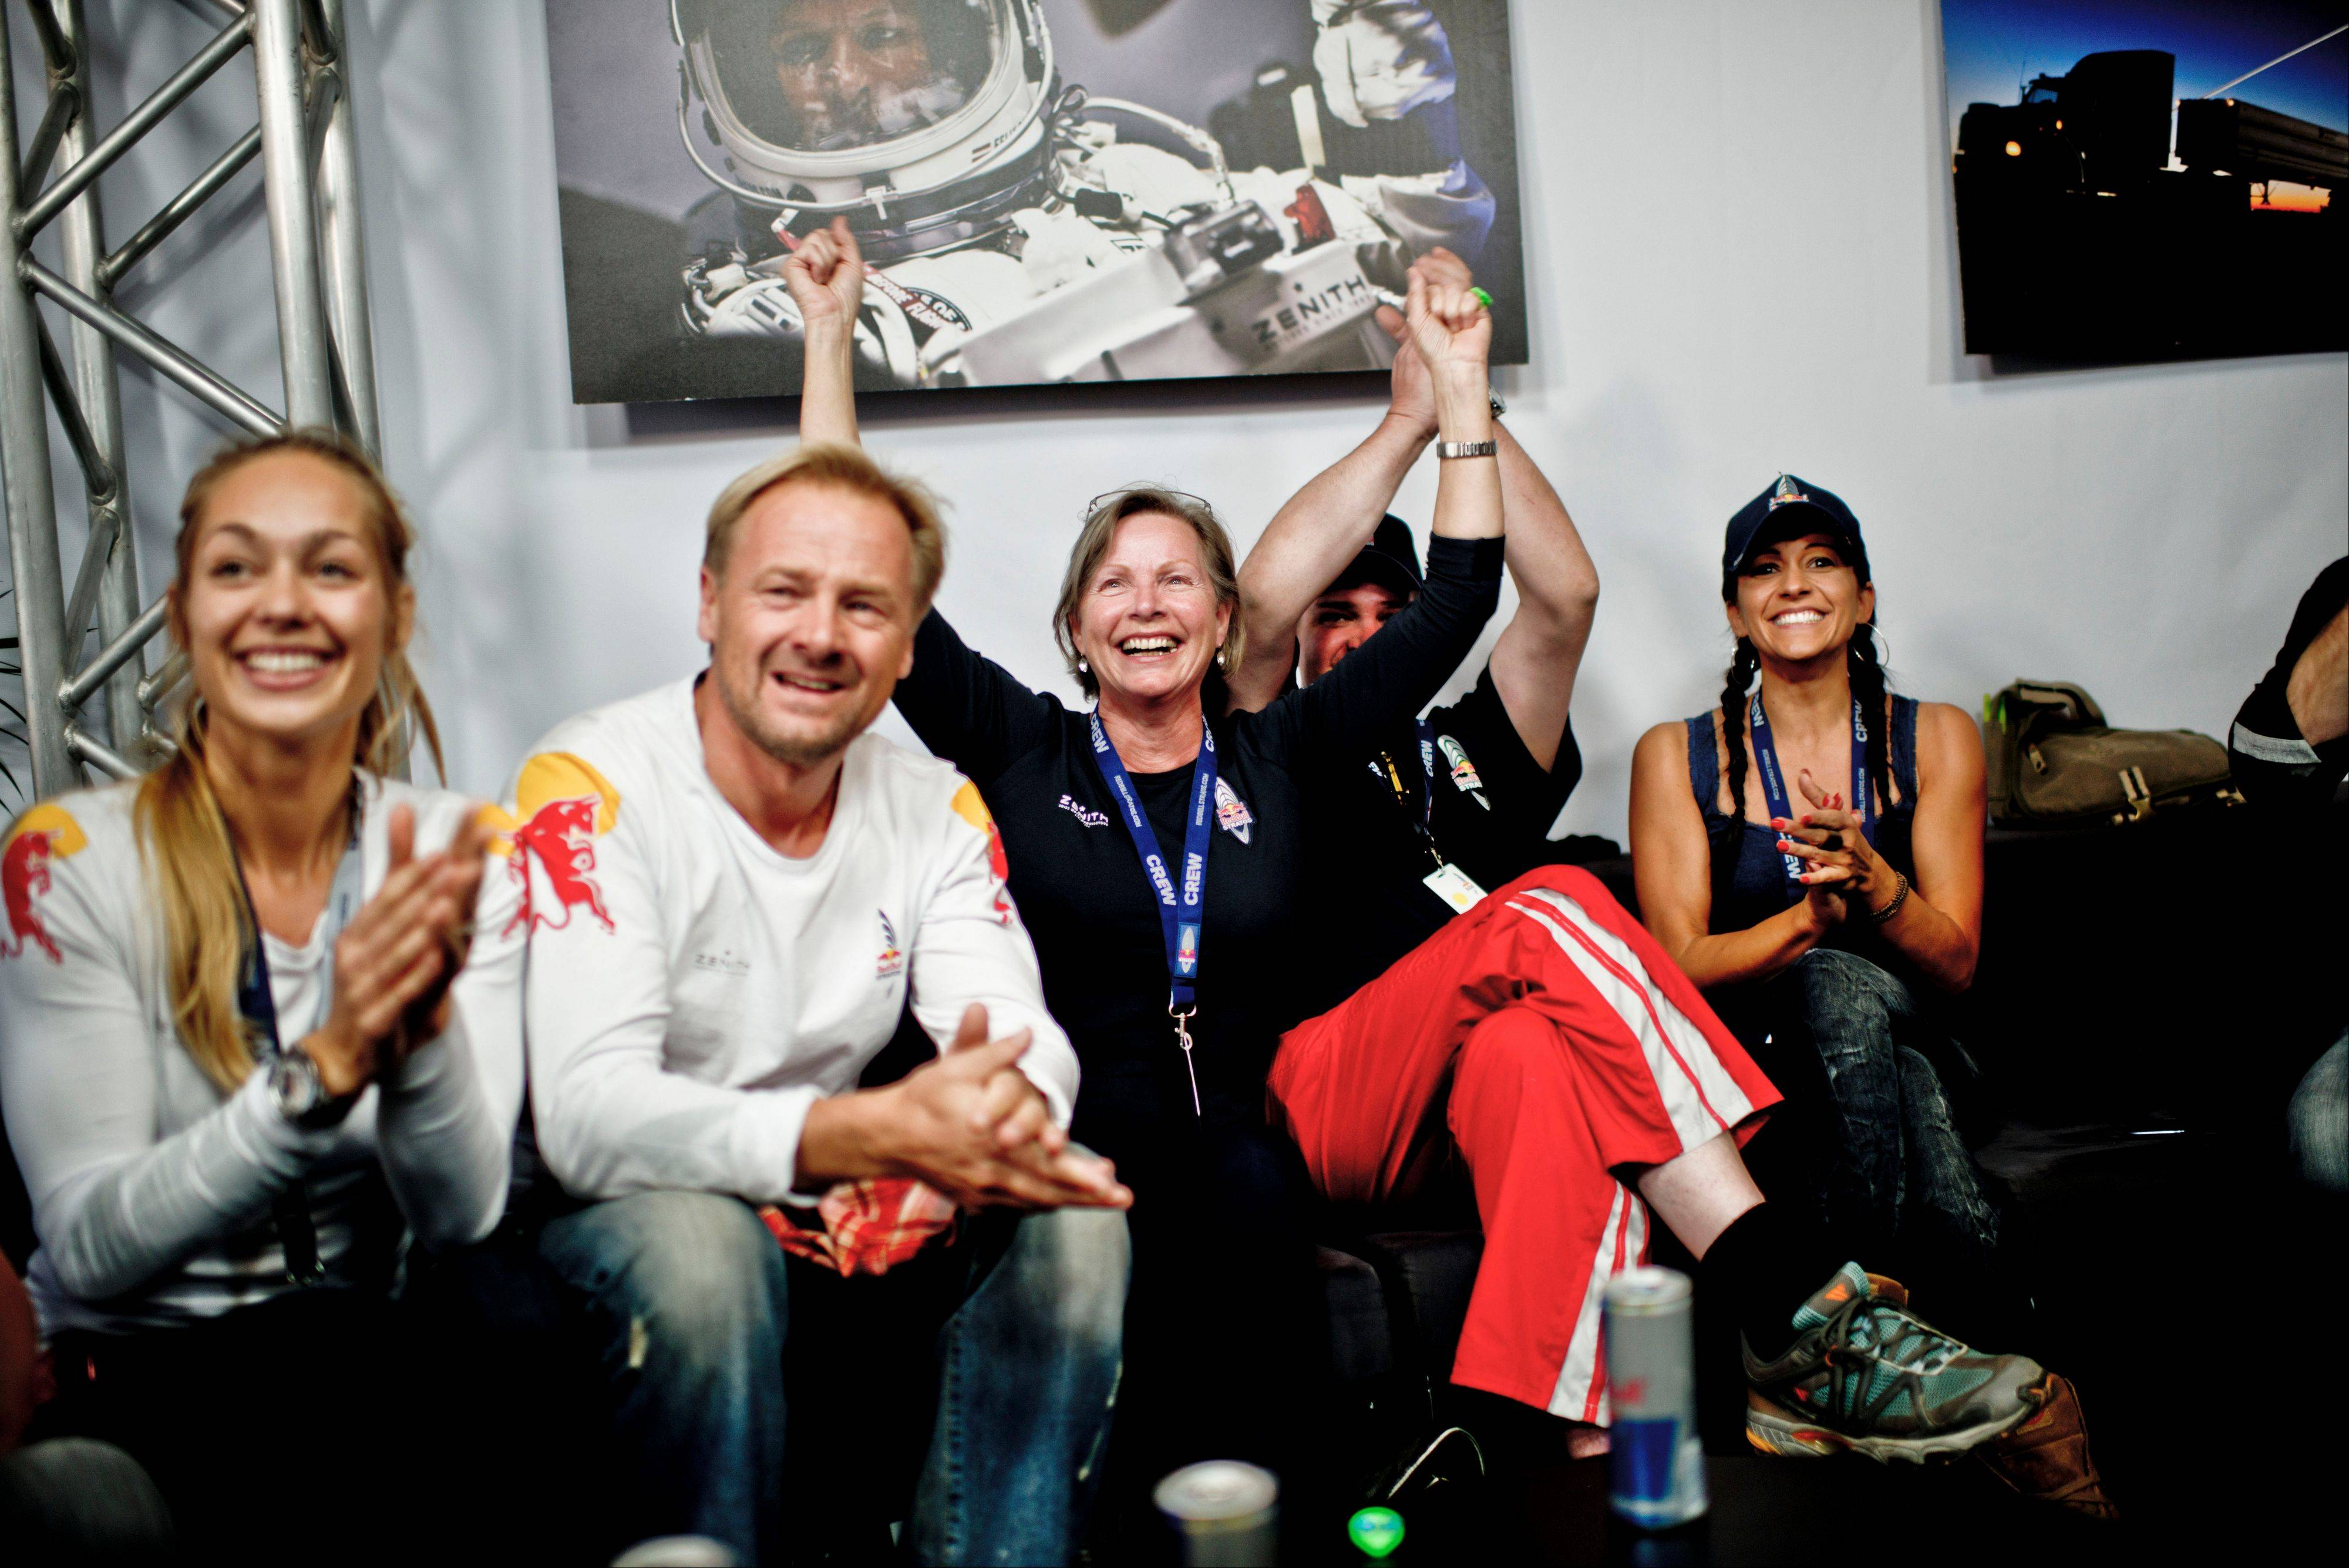 In this photo provided by Red Bull, family members and friends, celebrate the successful jump of pilot Felix Baumgartner of Austria in Roswell, N.M. on Sunday, Oct. 14, 2012. Baumgartner came down safely in the eastern New Mexico desert minutes about nine minutes after jumping from his capsule 128,097 feet, or roughly 24 miles, above Earth.